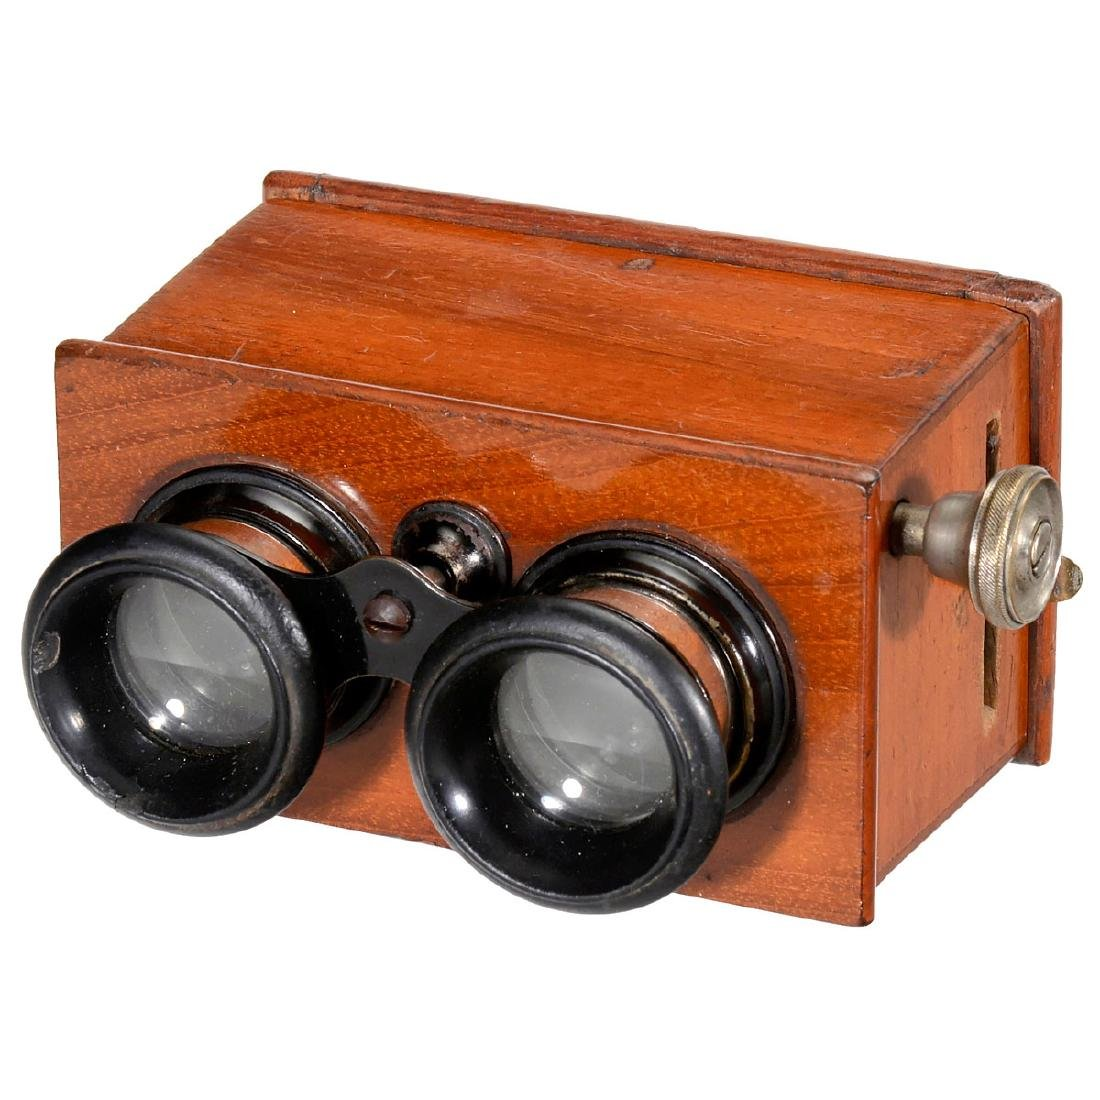 2 Hand Stereo Viewers (6 x 13 and 45 x 107), c. 1926 - 2